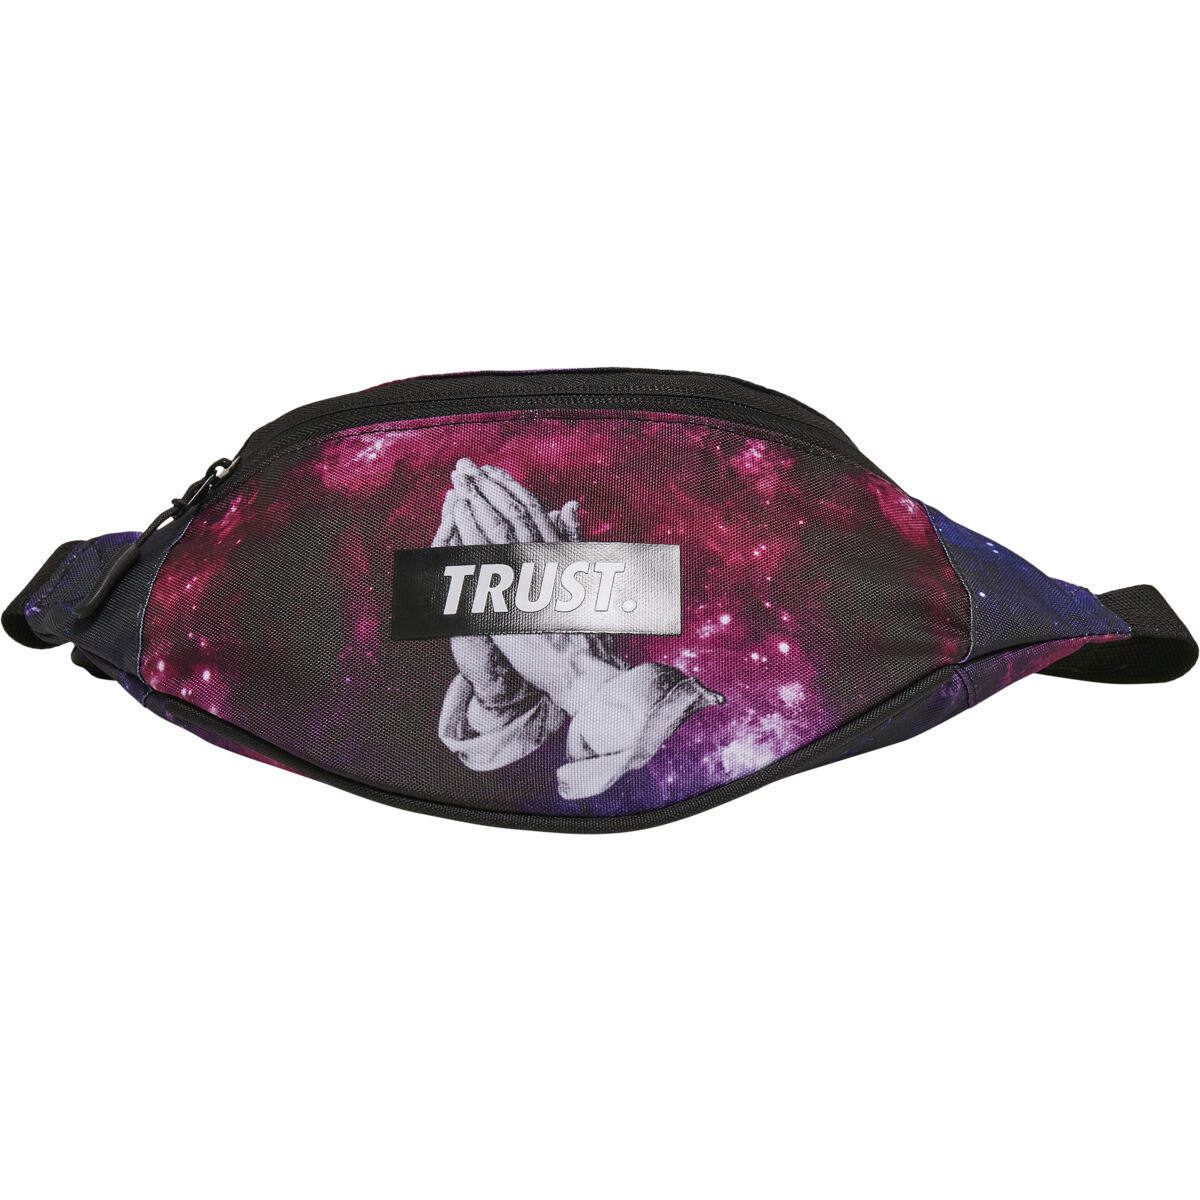 C&S WL Space Trust Shoulder Bag